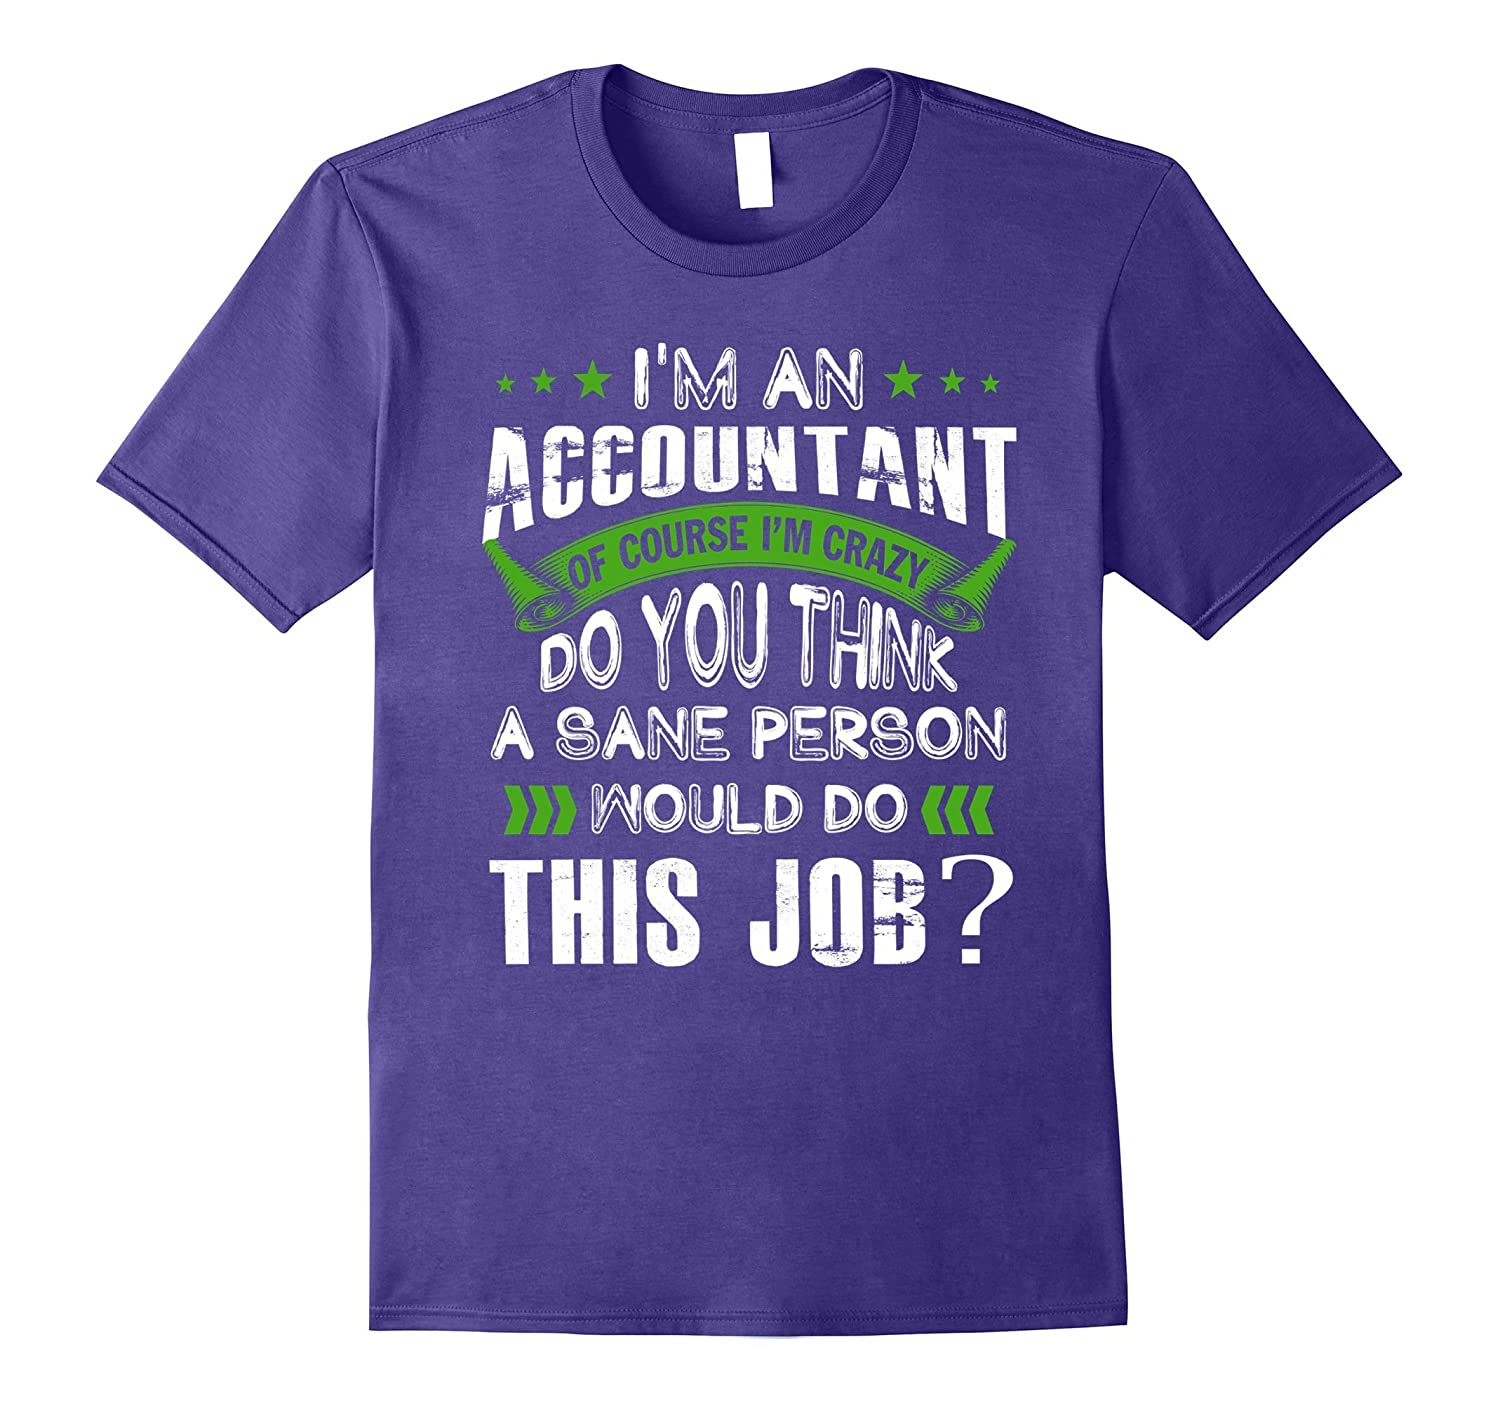 ACCOUNTANT crazy do you think a sane person would this job-TJ